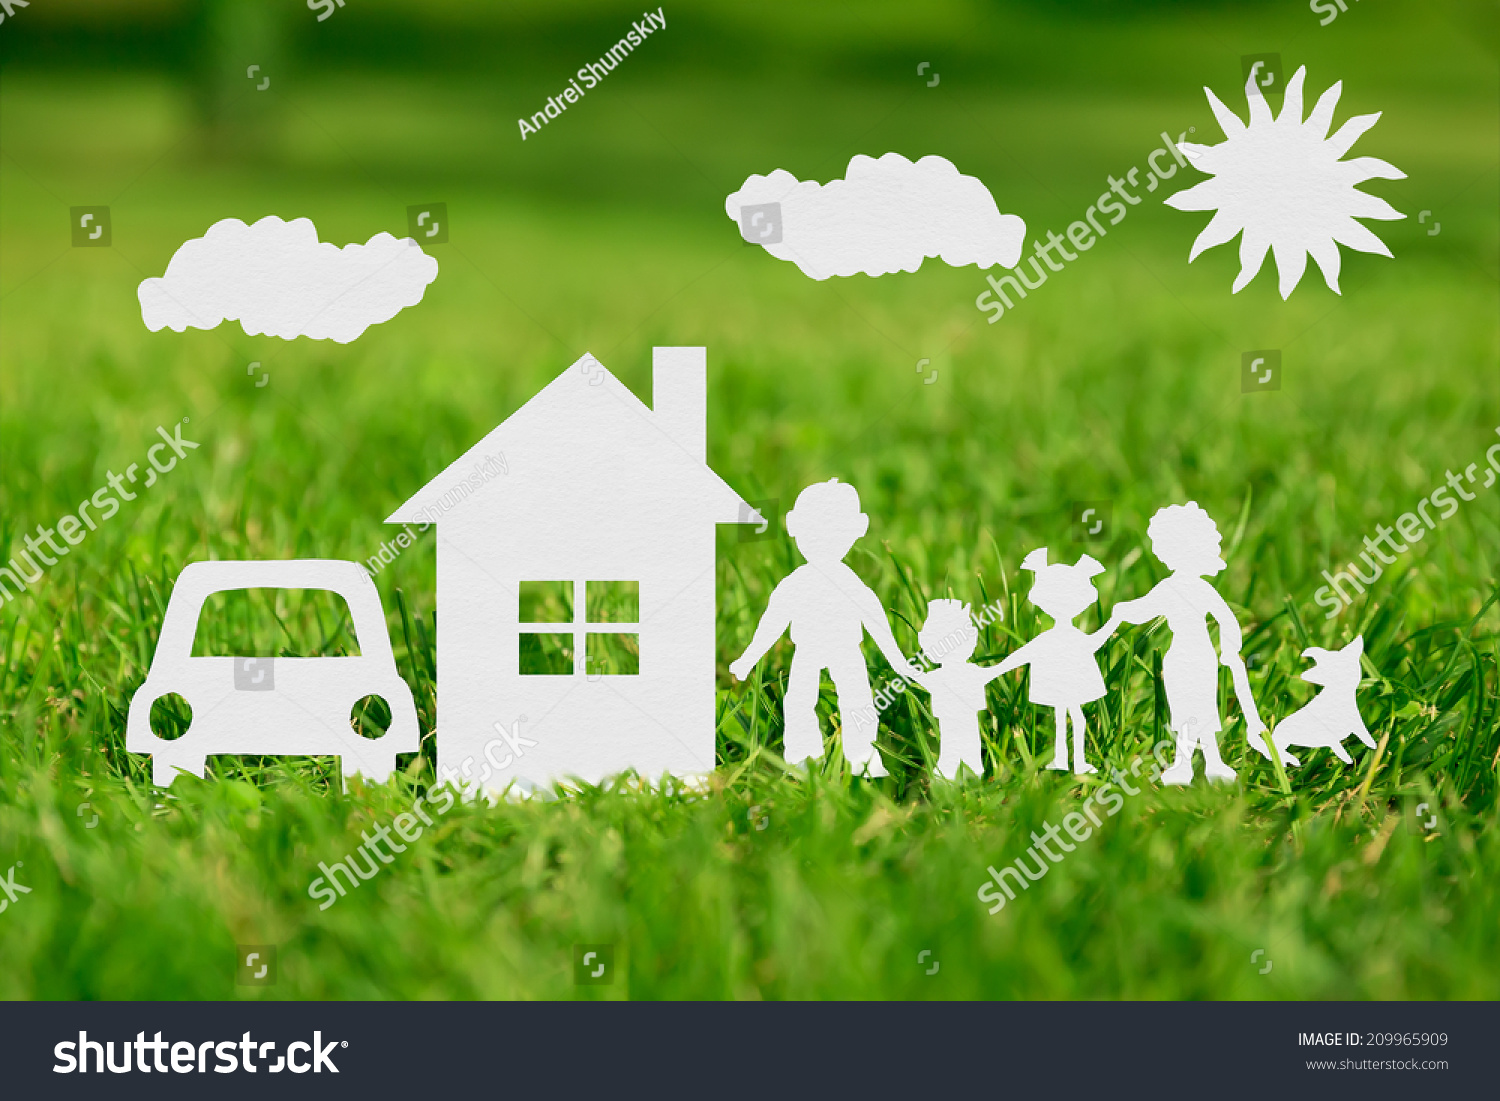 House on green grass